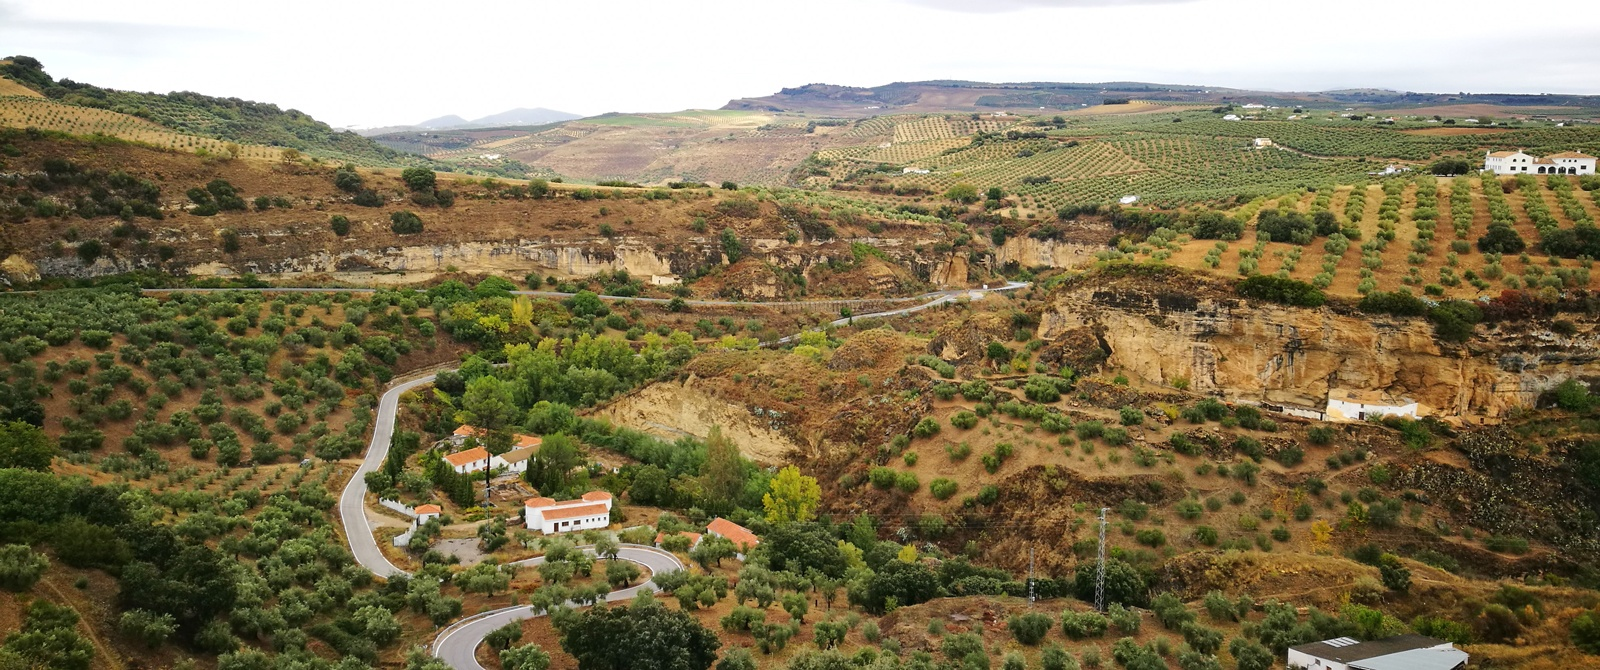 Andalucia Bike Tour & Cycling Vacations